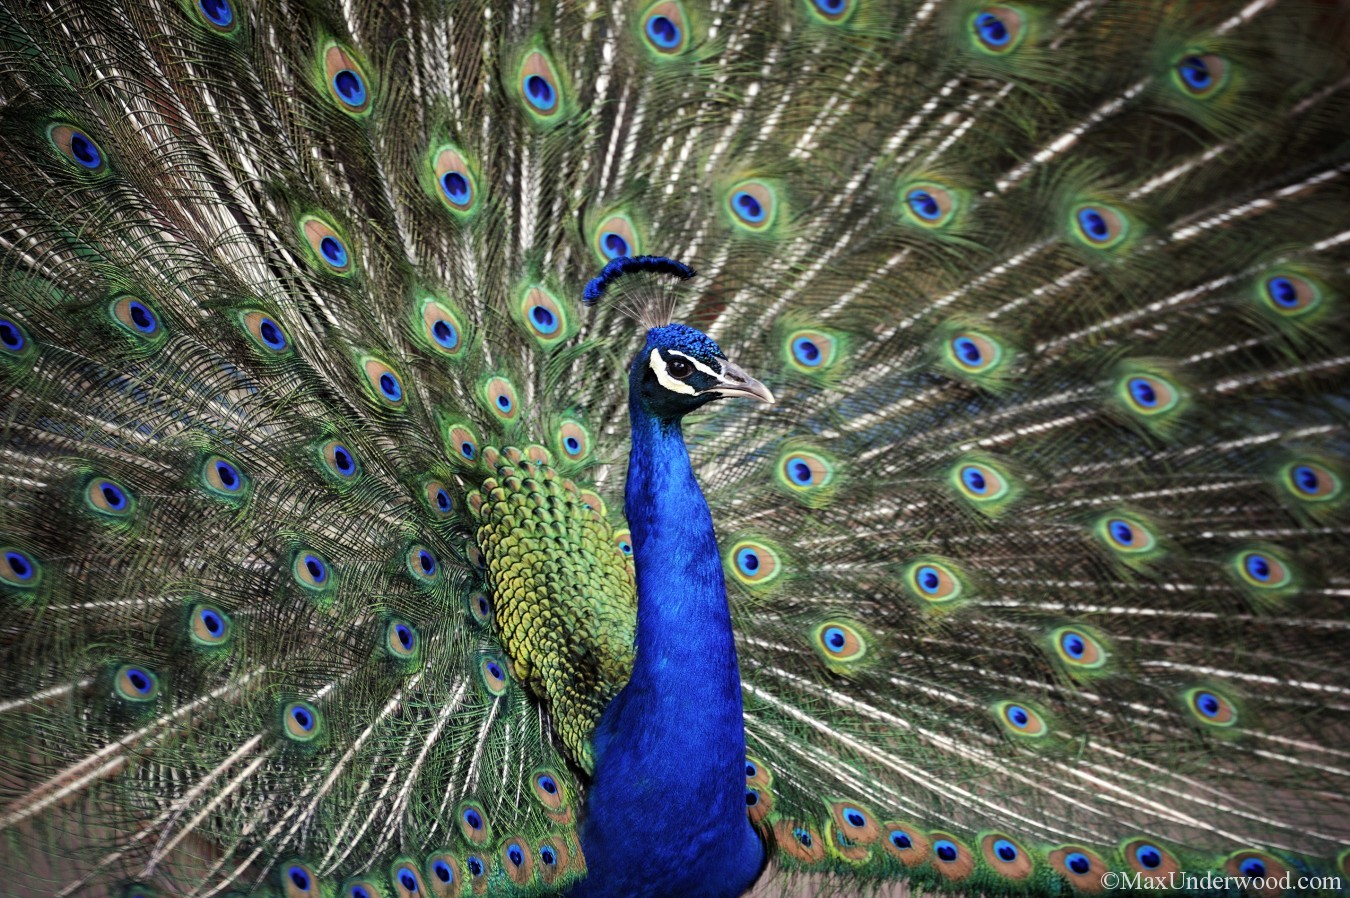 Peacock, plumage, colorful feathers, animals, birds, floral. New Mexico.